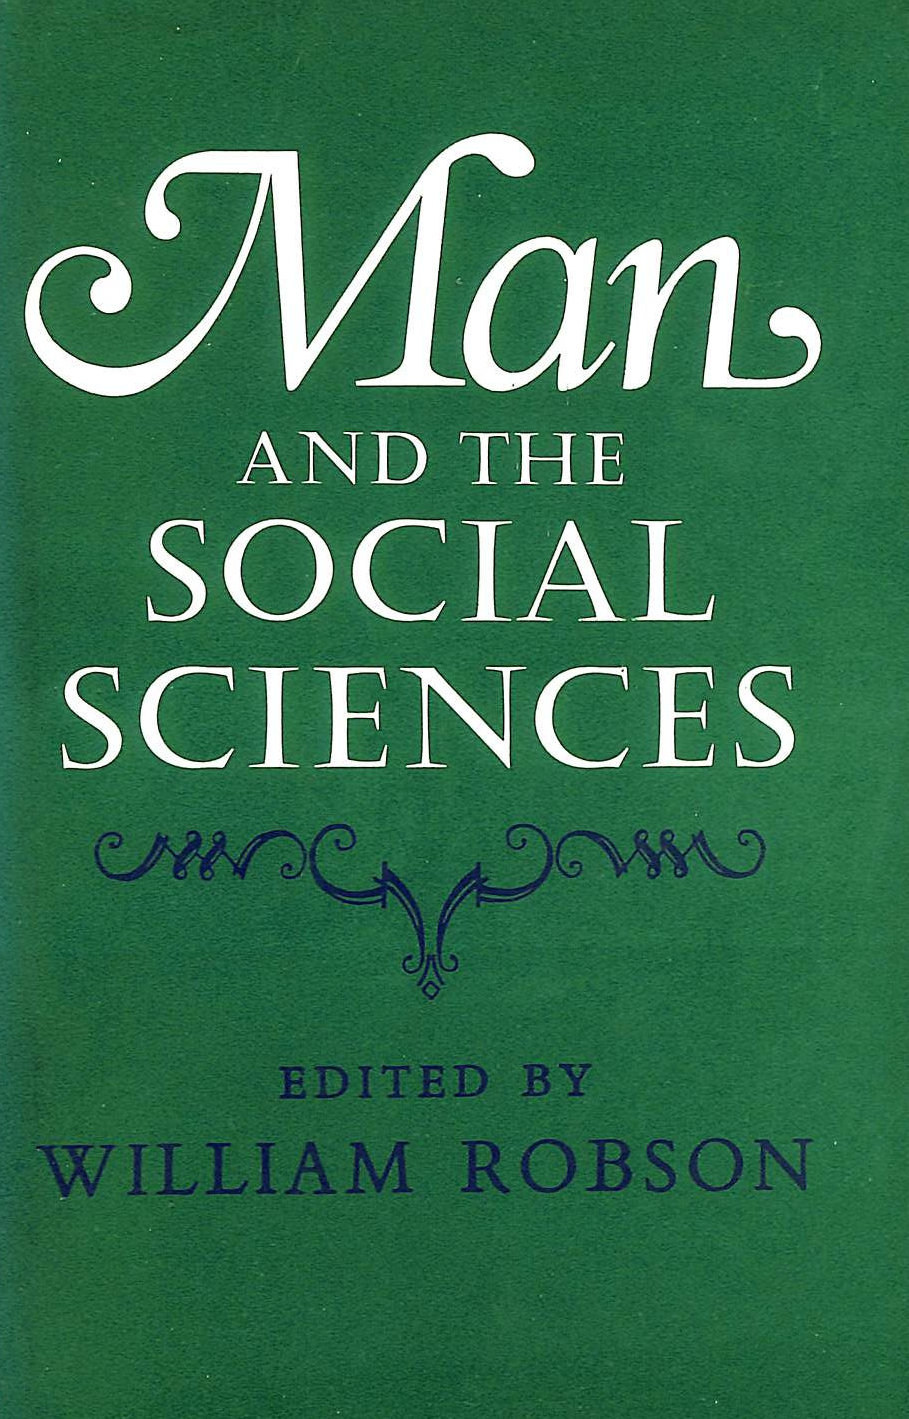 Image for Man and the social sciences;: Twelve lectures delivered at the London School of Economics and Political Science tracing the development of the social sciences during the present century